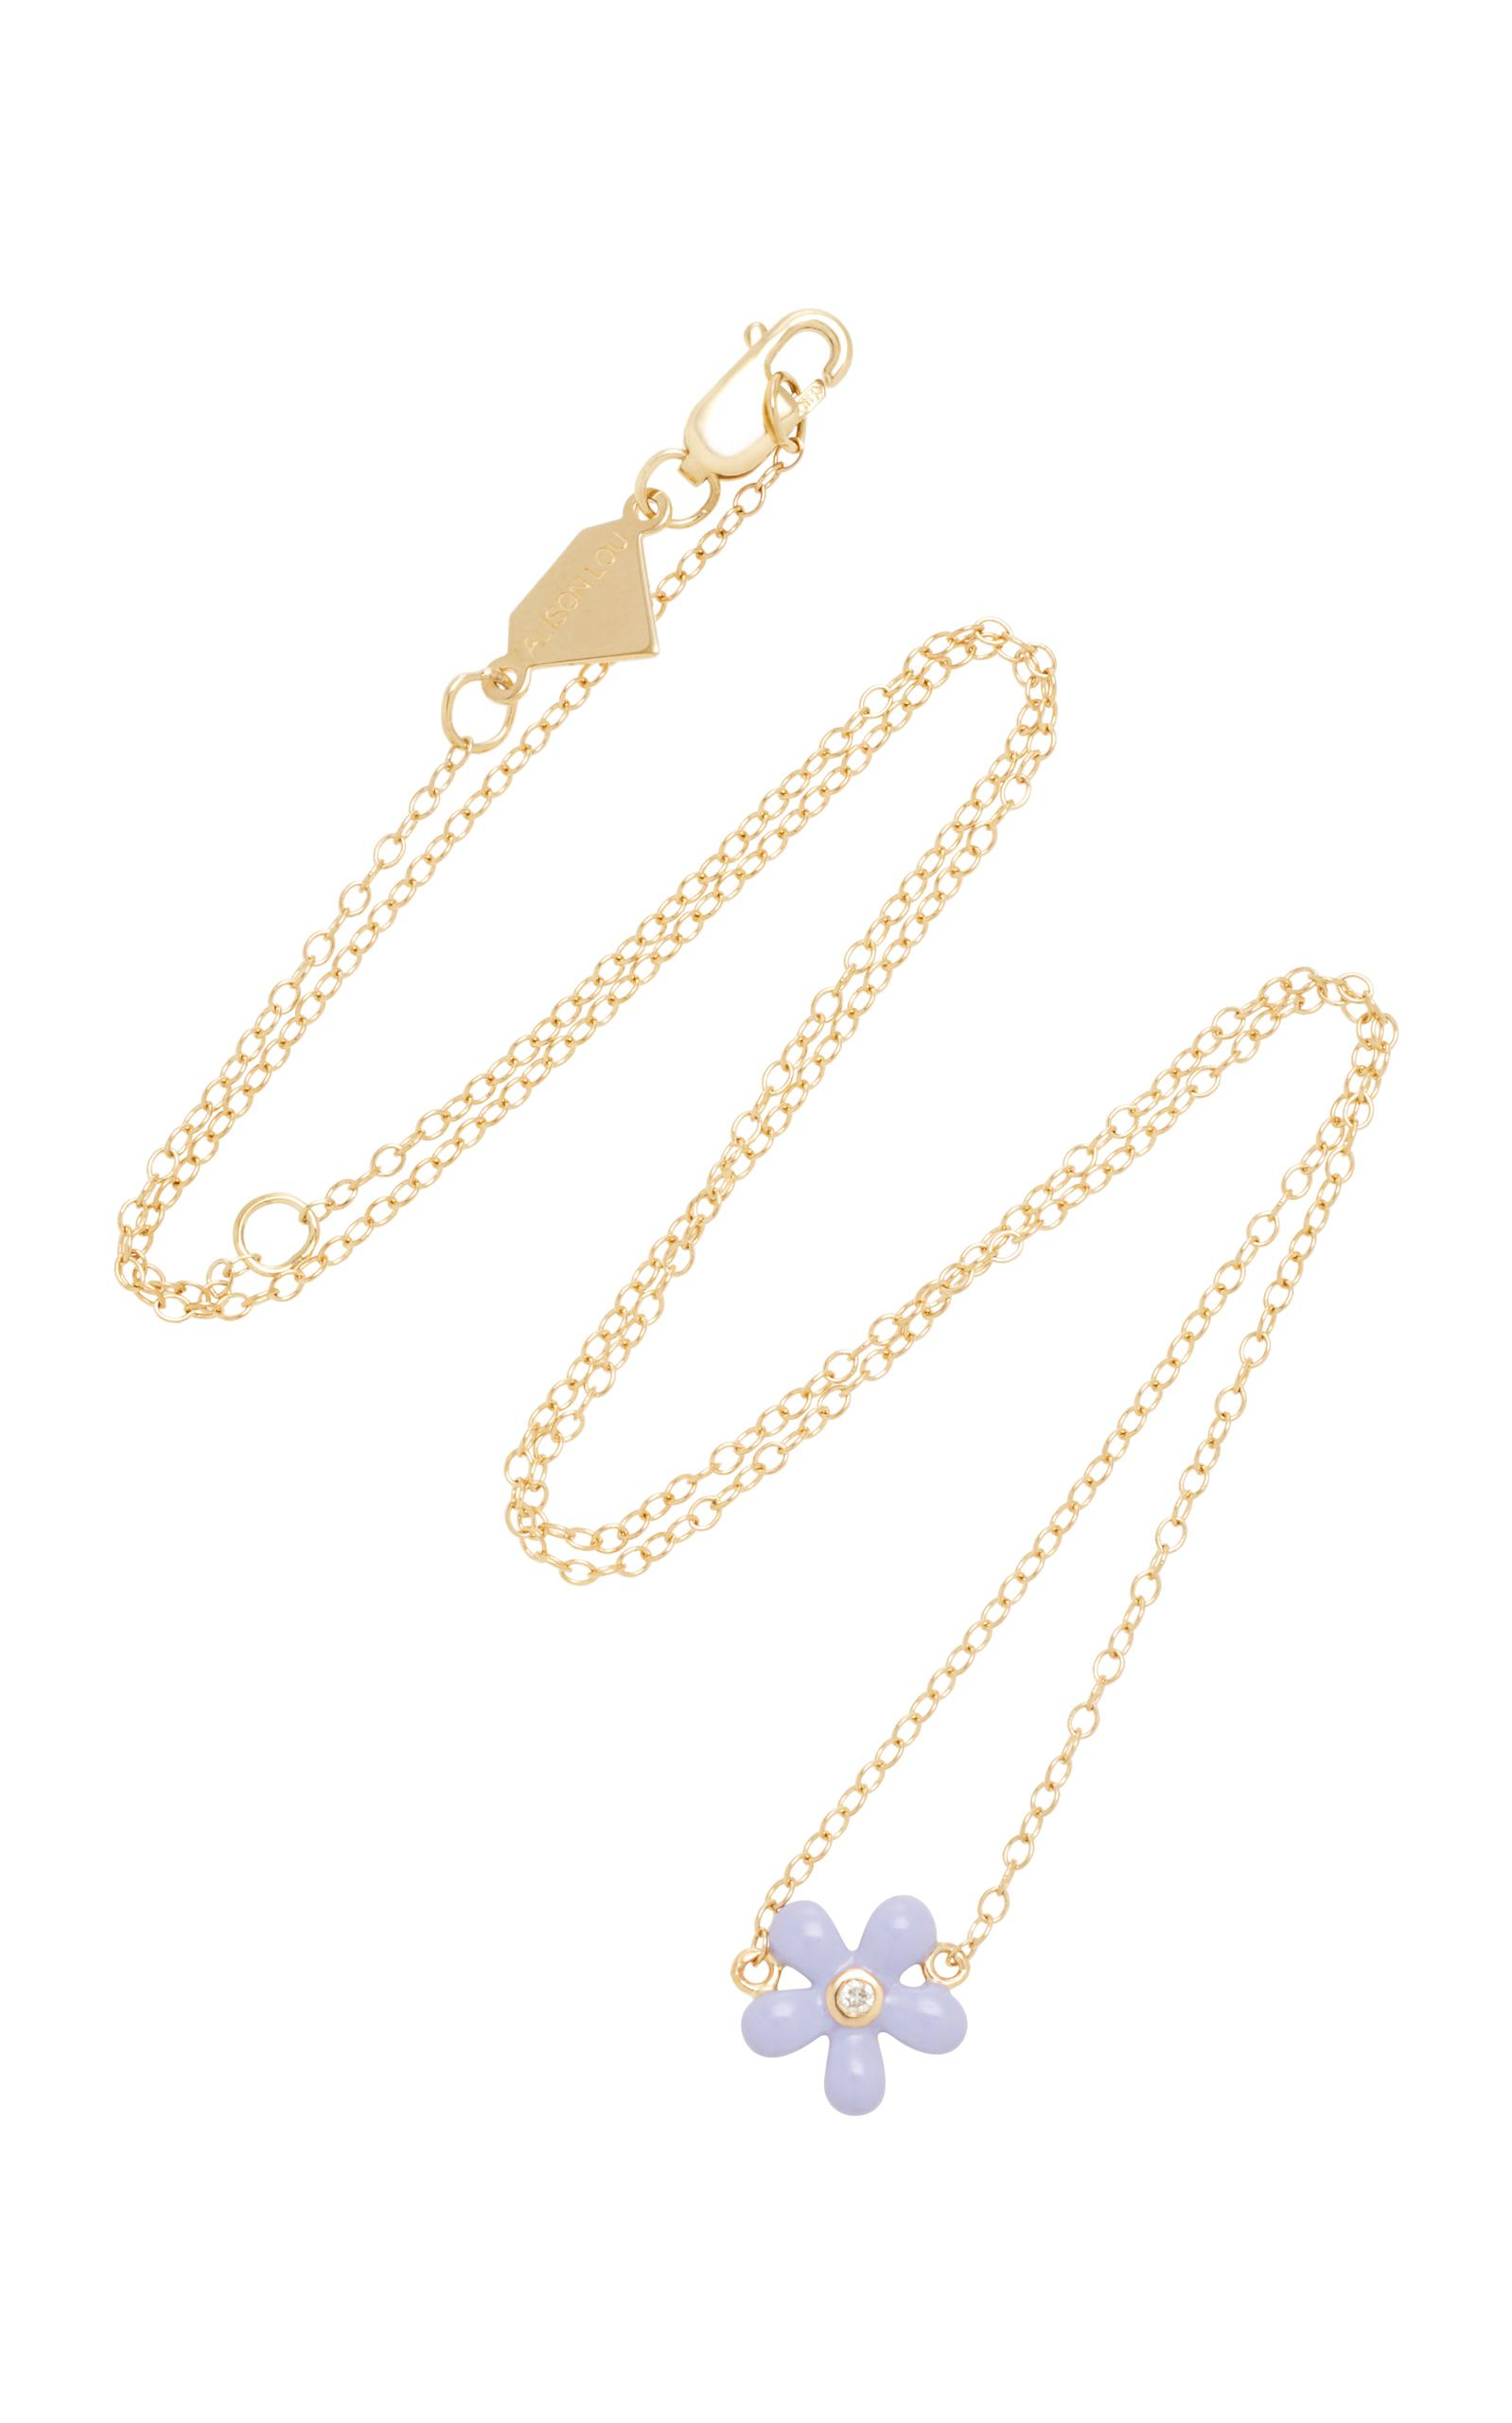 14k Or Saphir Rose Et Collier De Diamants Alison Lou CS0m3zJ8